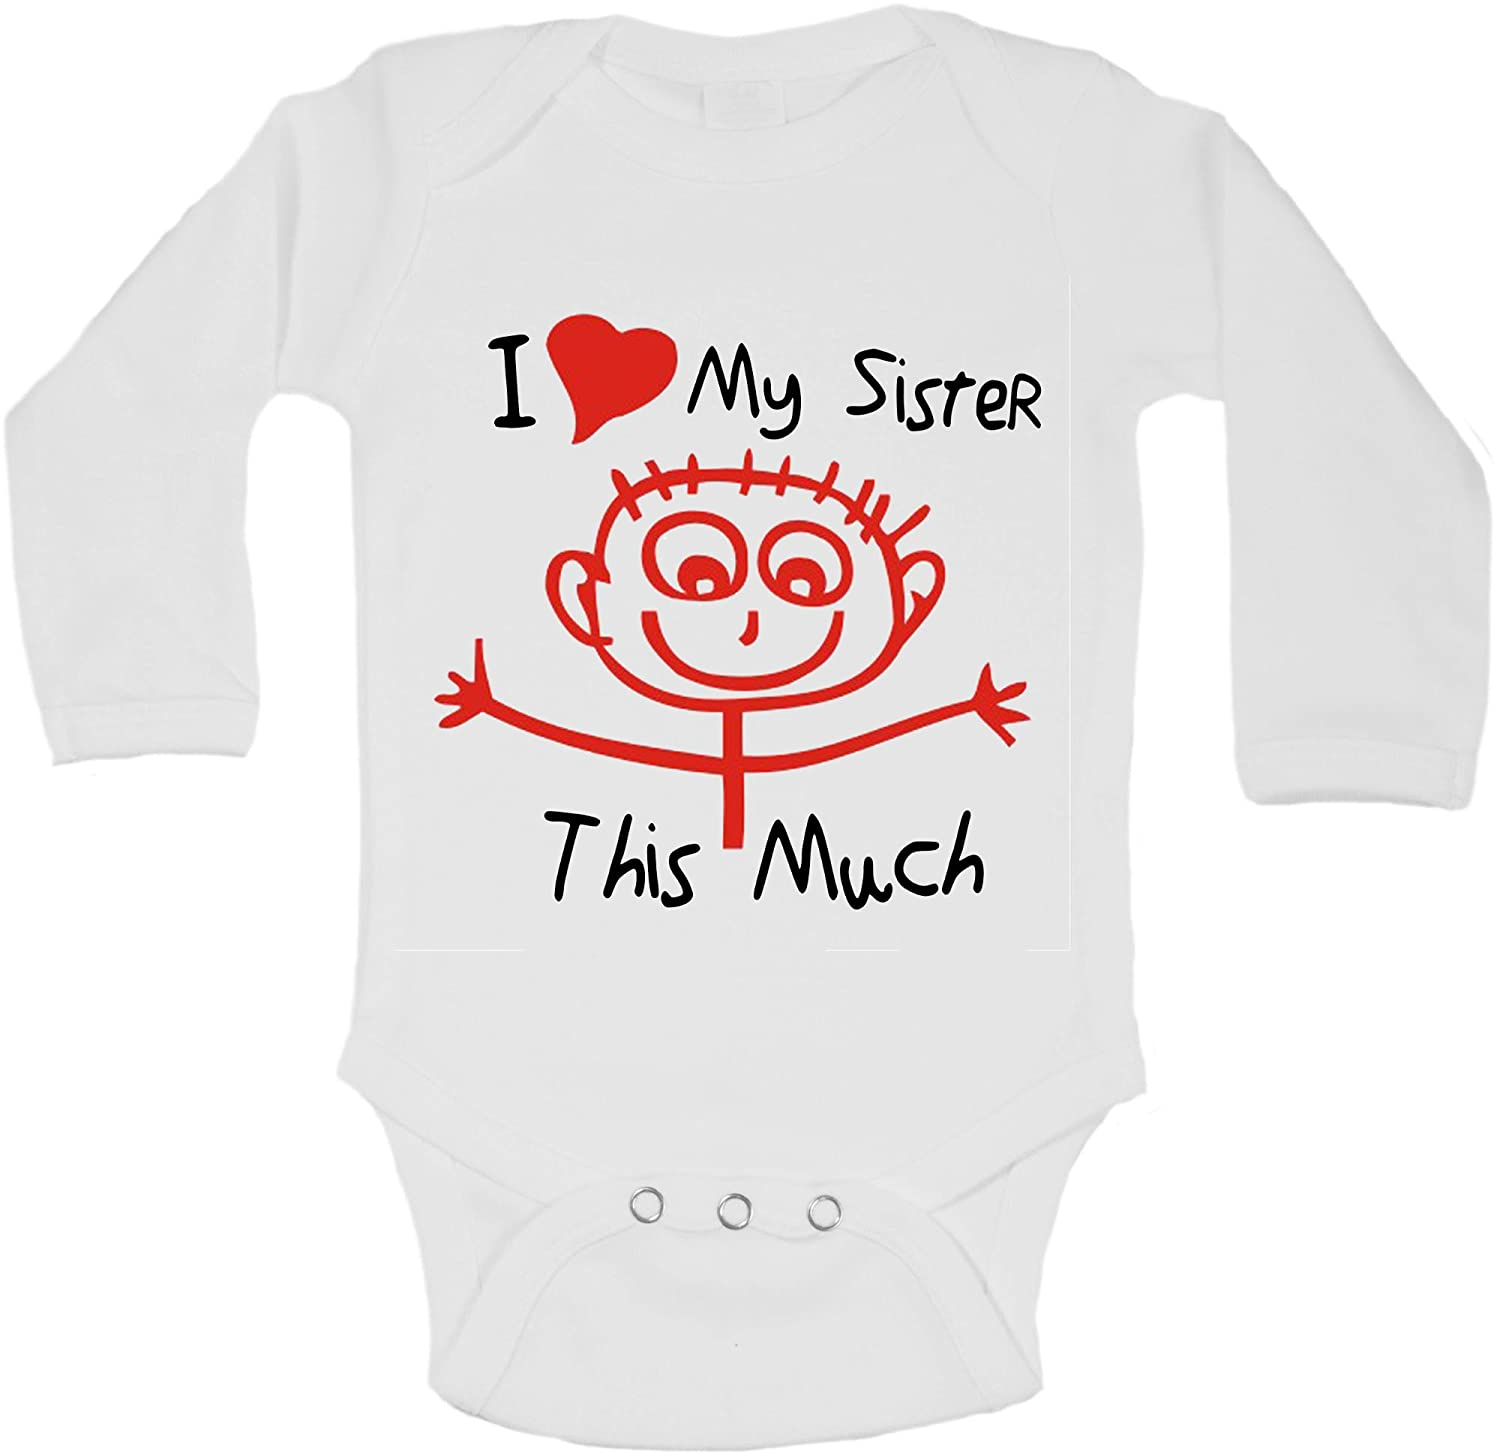 I Love My Sister This Much Personalized Long Sleeve Baby Vests Bodysuits Baby Grows Unisex Boys Girls White Newborn Baby